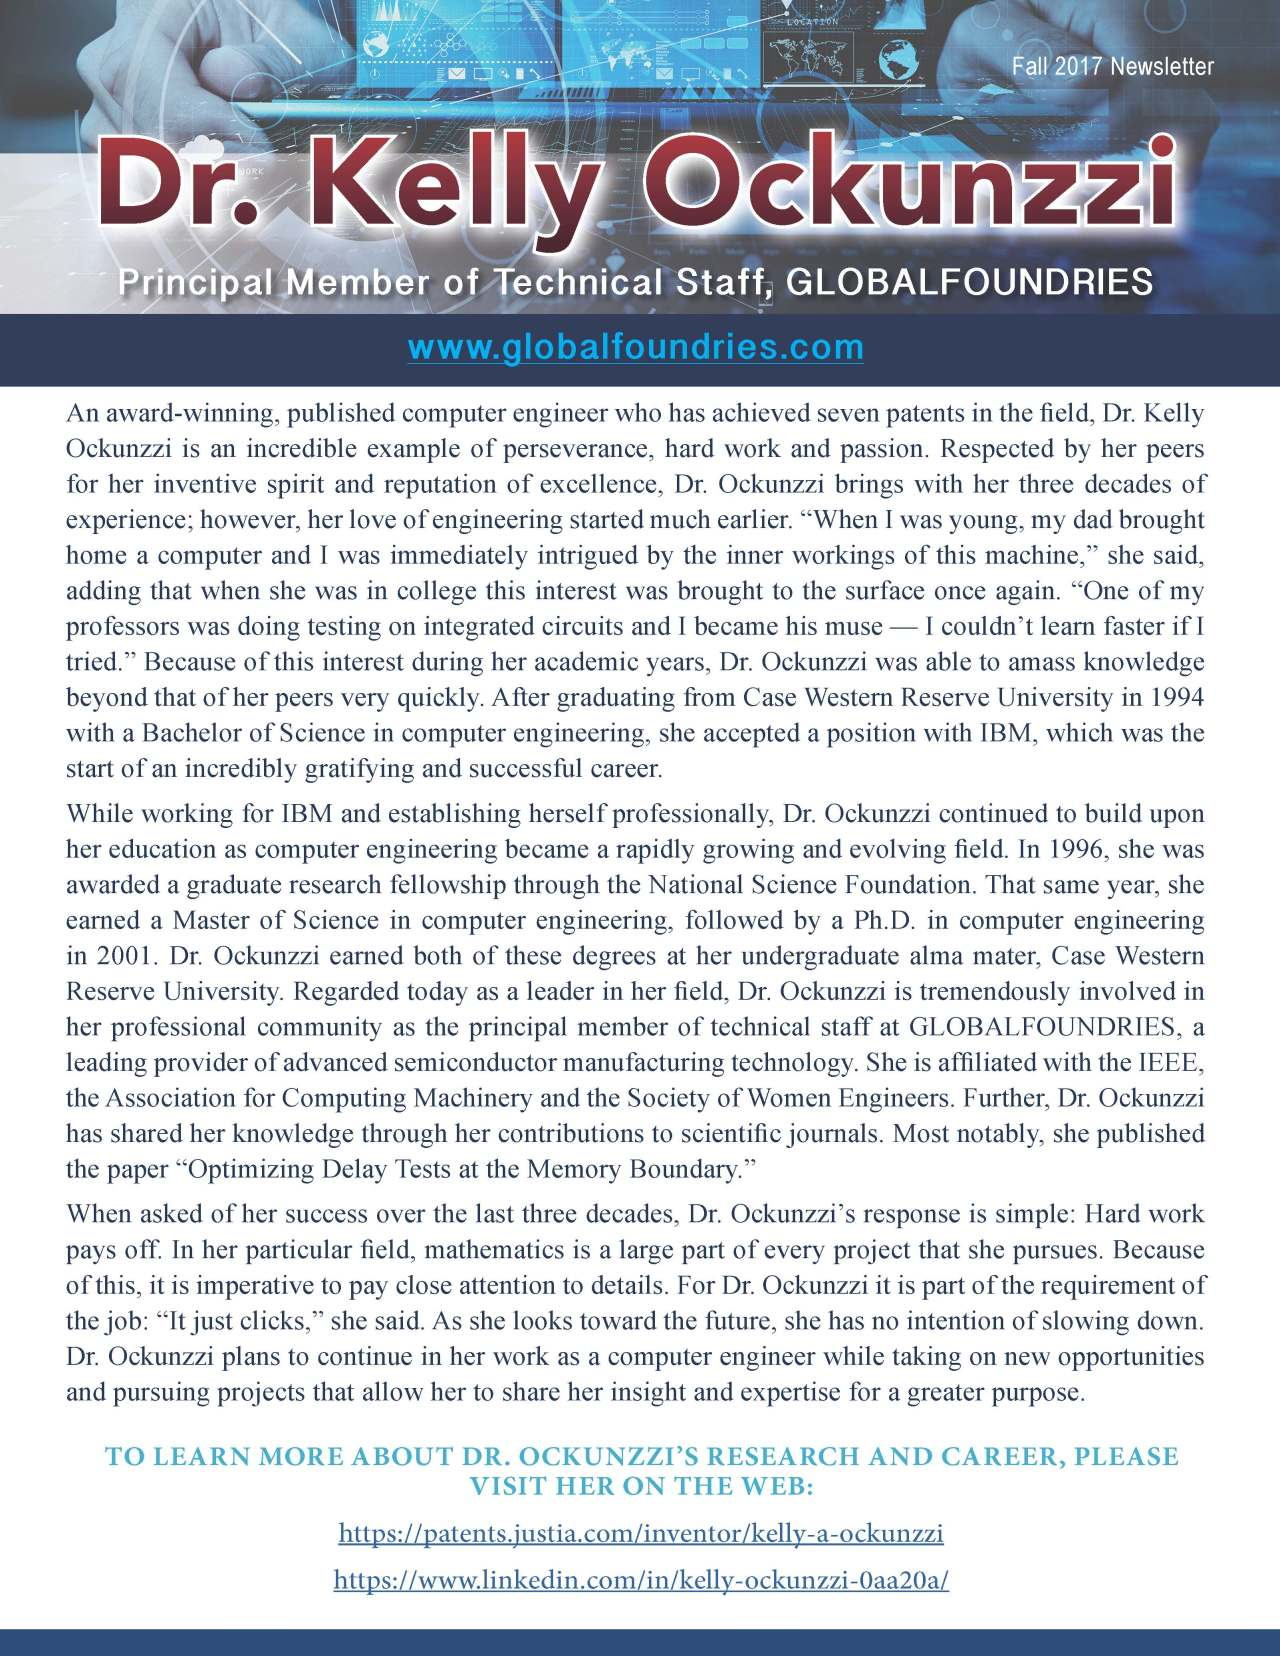 Ockunzzi, Kelly 3690061_4003690061 Newsletter.jpg